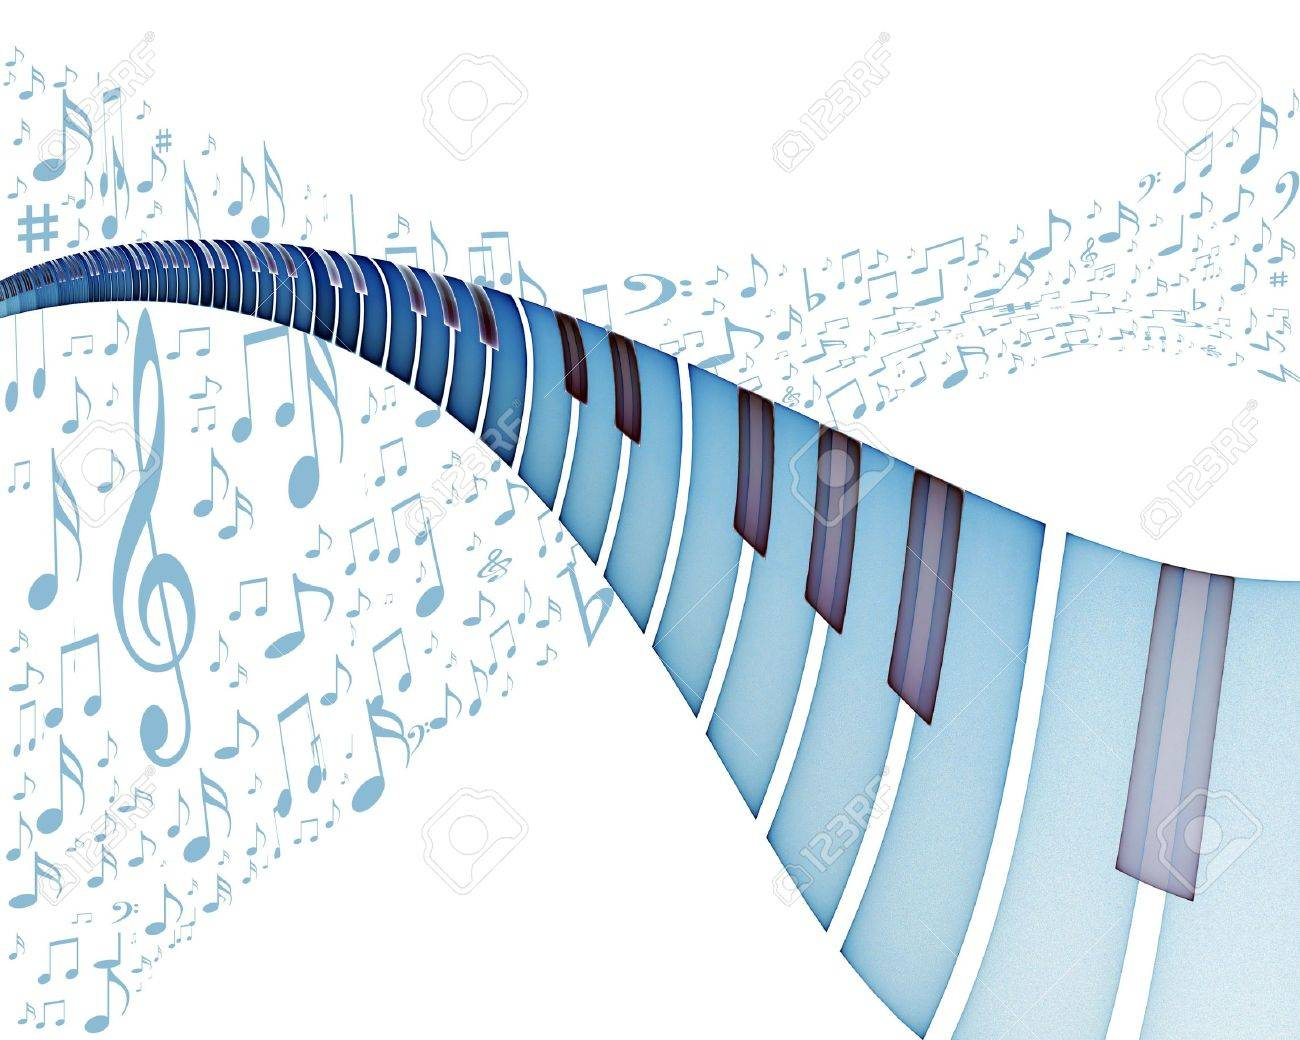 Blue keyboard with piano music notes dancing away, illustration on white background, Stock Illustration - 4023630